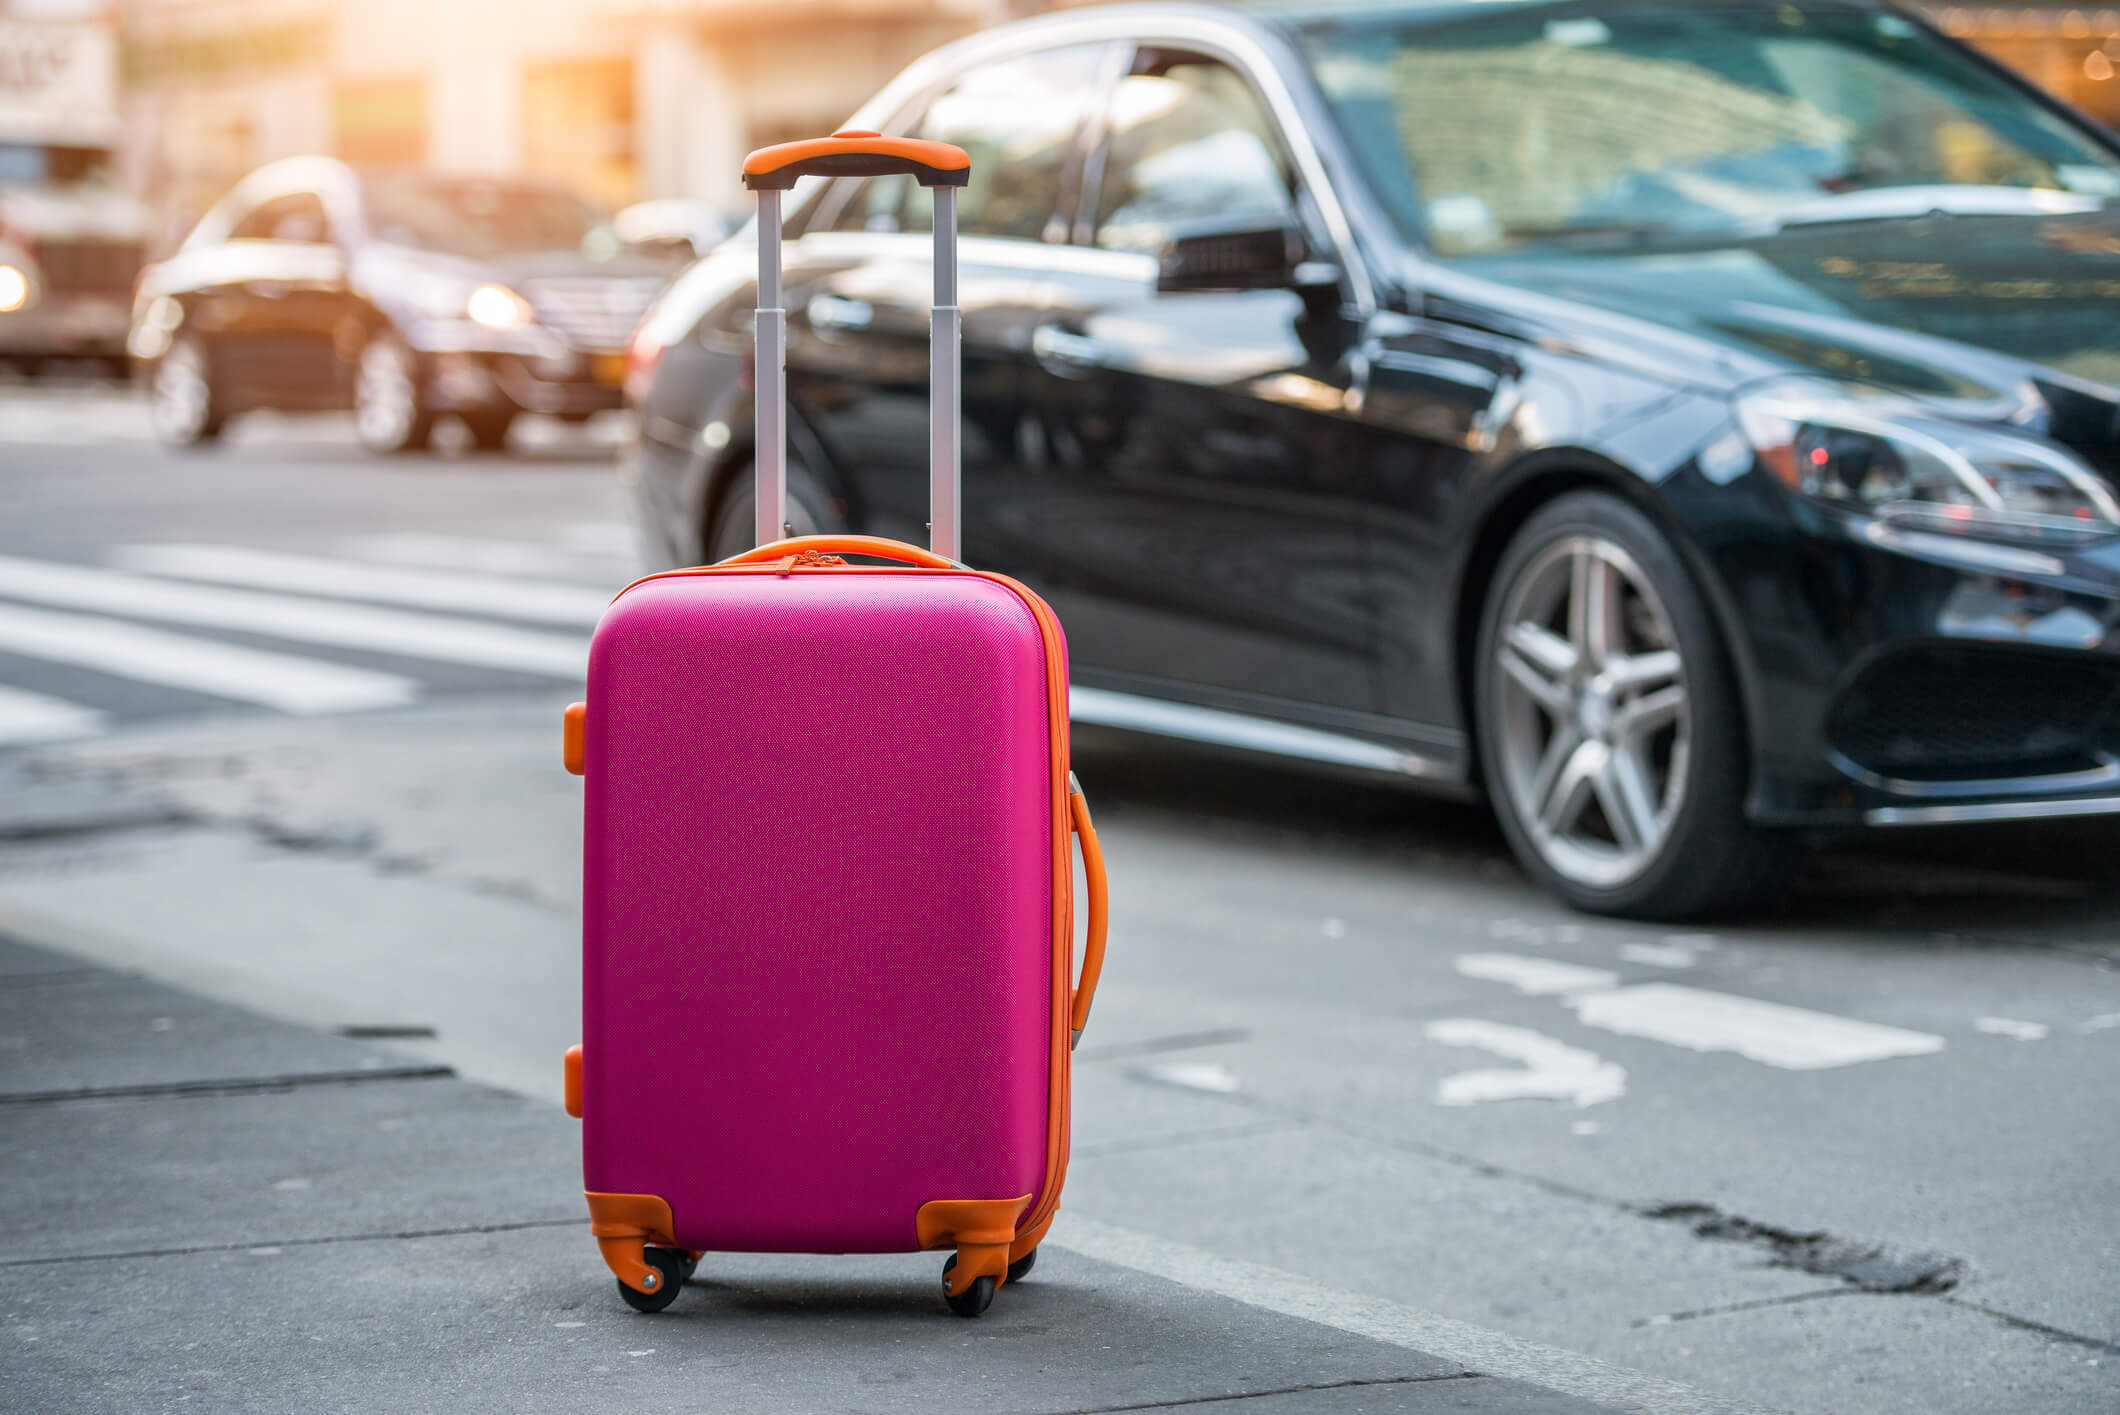 Suitcase in front of car.